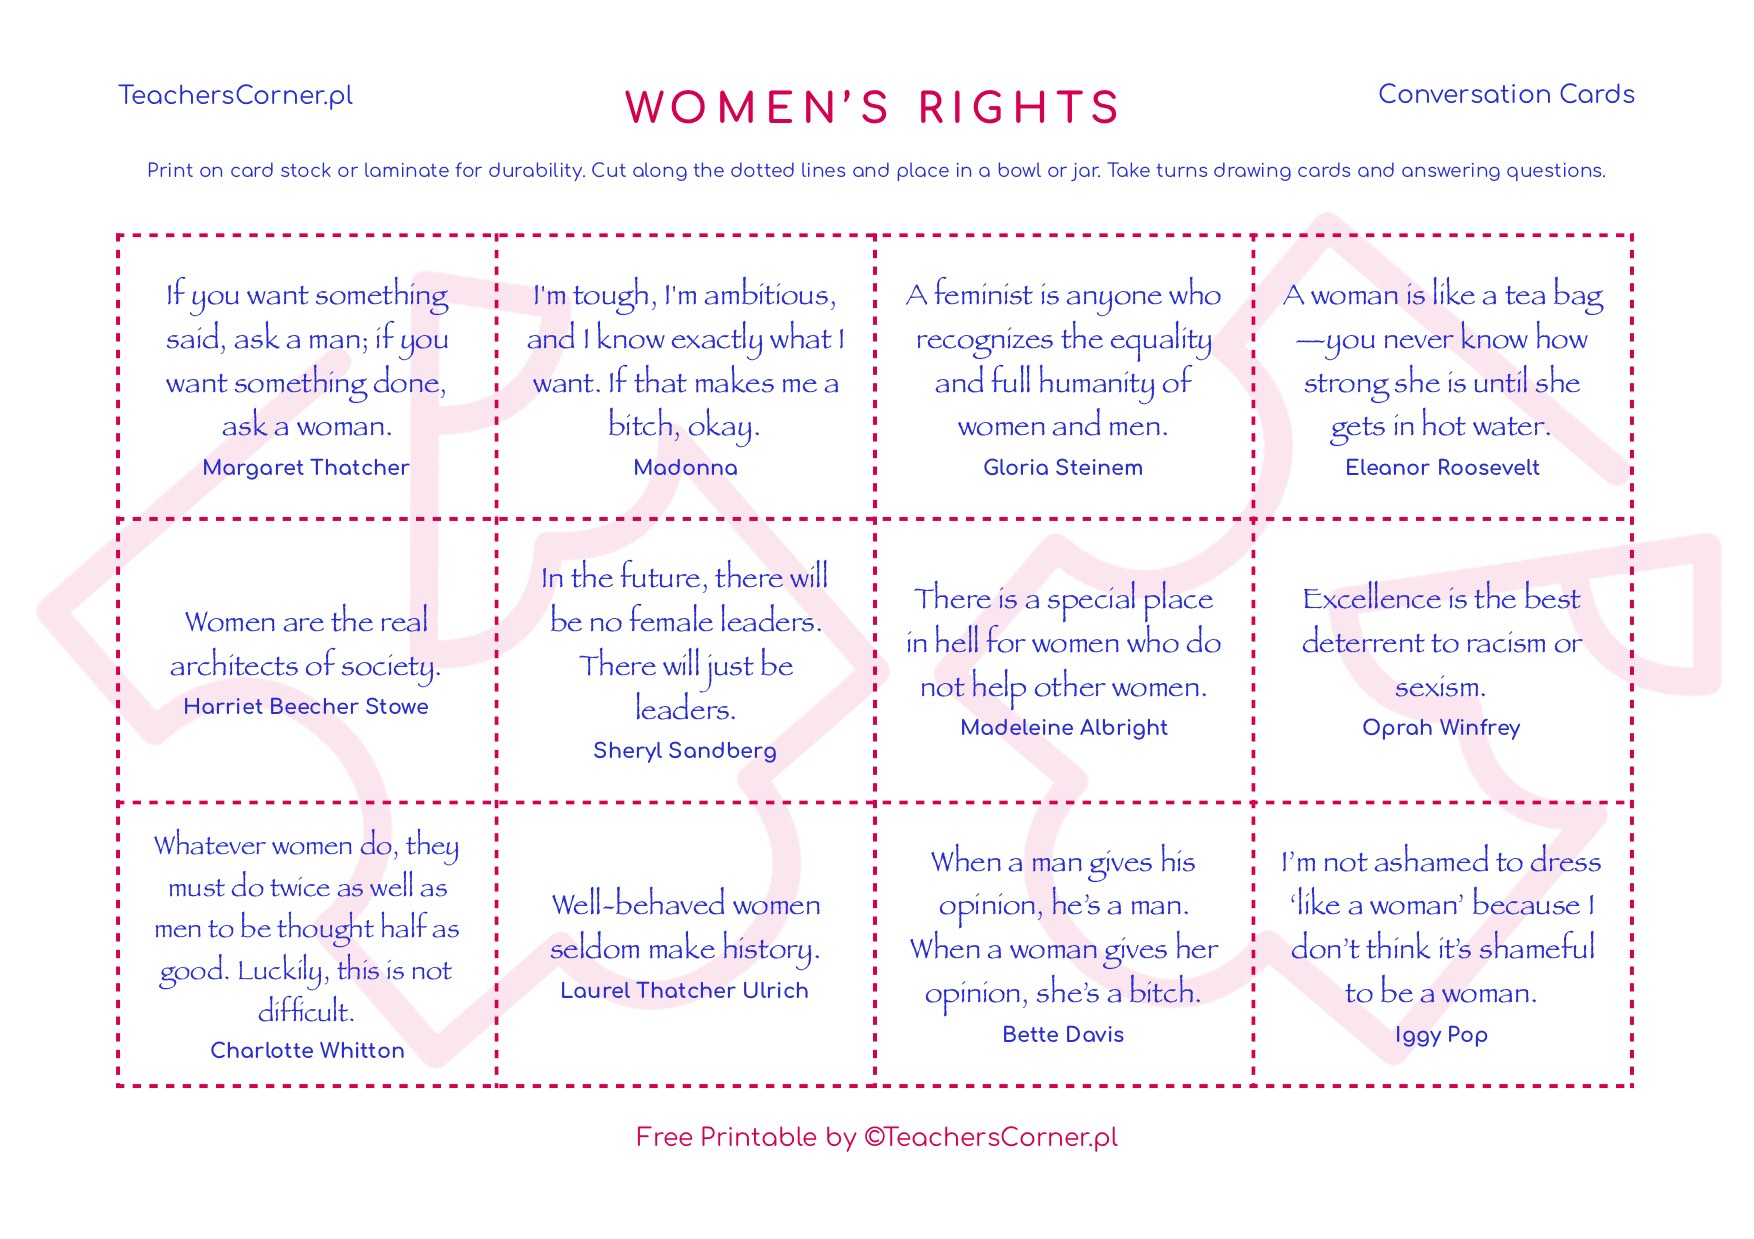 women's rights conversation cards